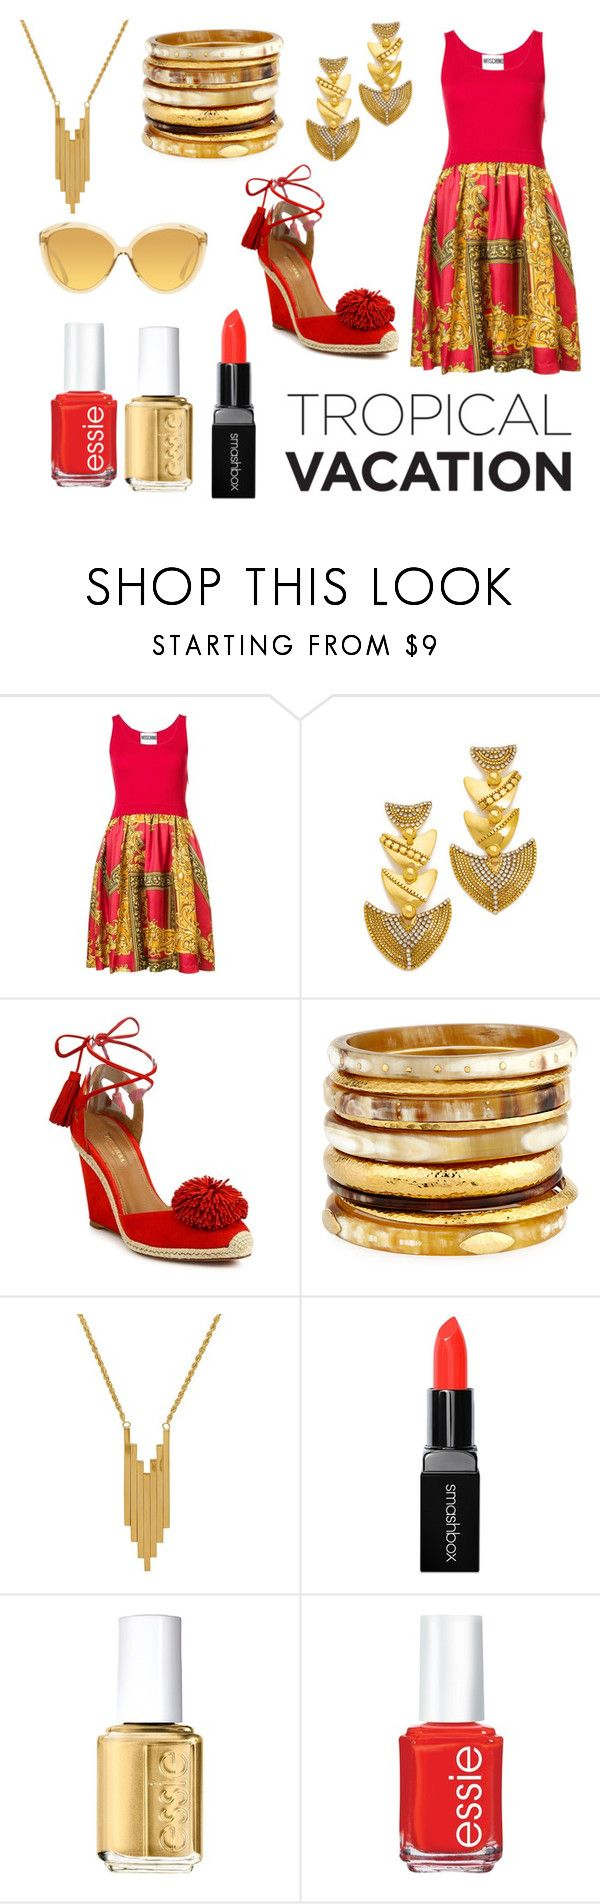 """Sin título #333"" by candy-nohemi-velazco-mendiola ❤ liked on Polyvore featuring Moschino, Erickson Beamon, Aquazzura, Ashley Pittman, Lord & Taylor, Smashbox, Essie and Linda Farrow"